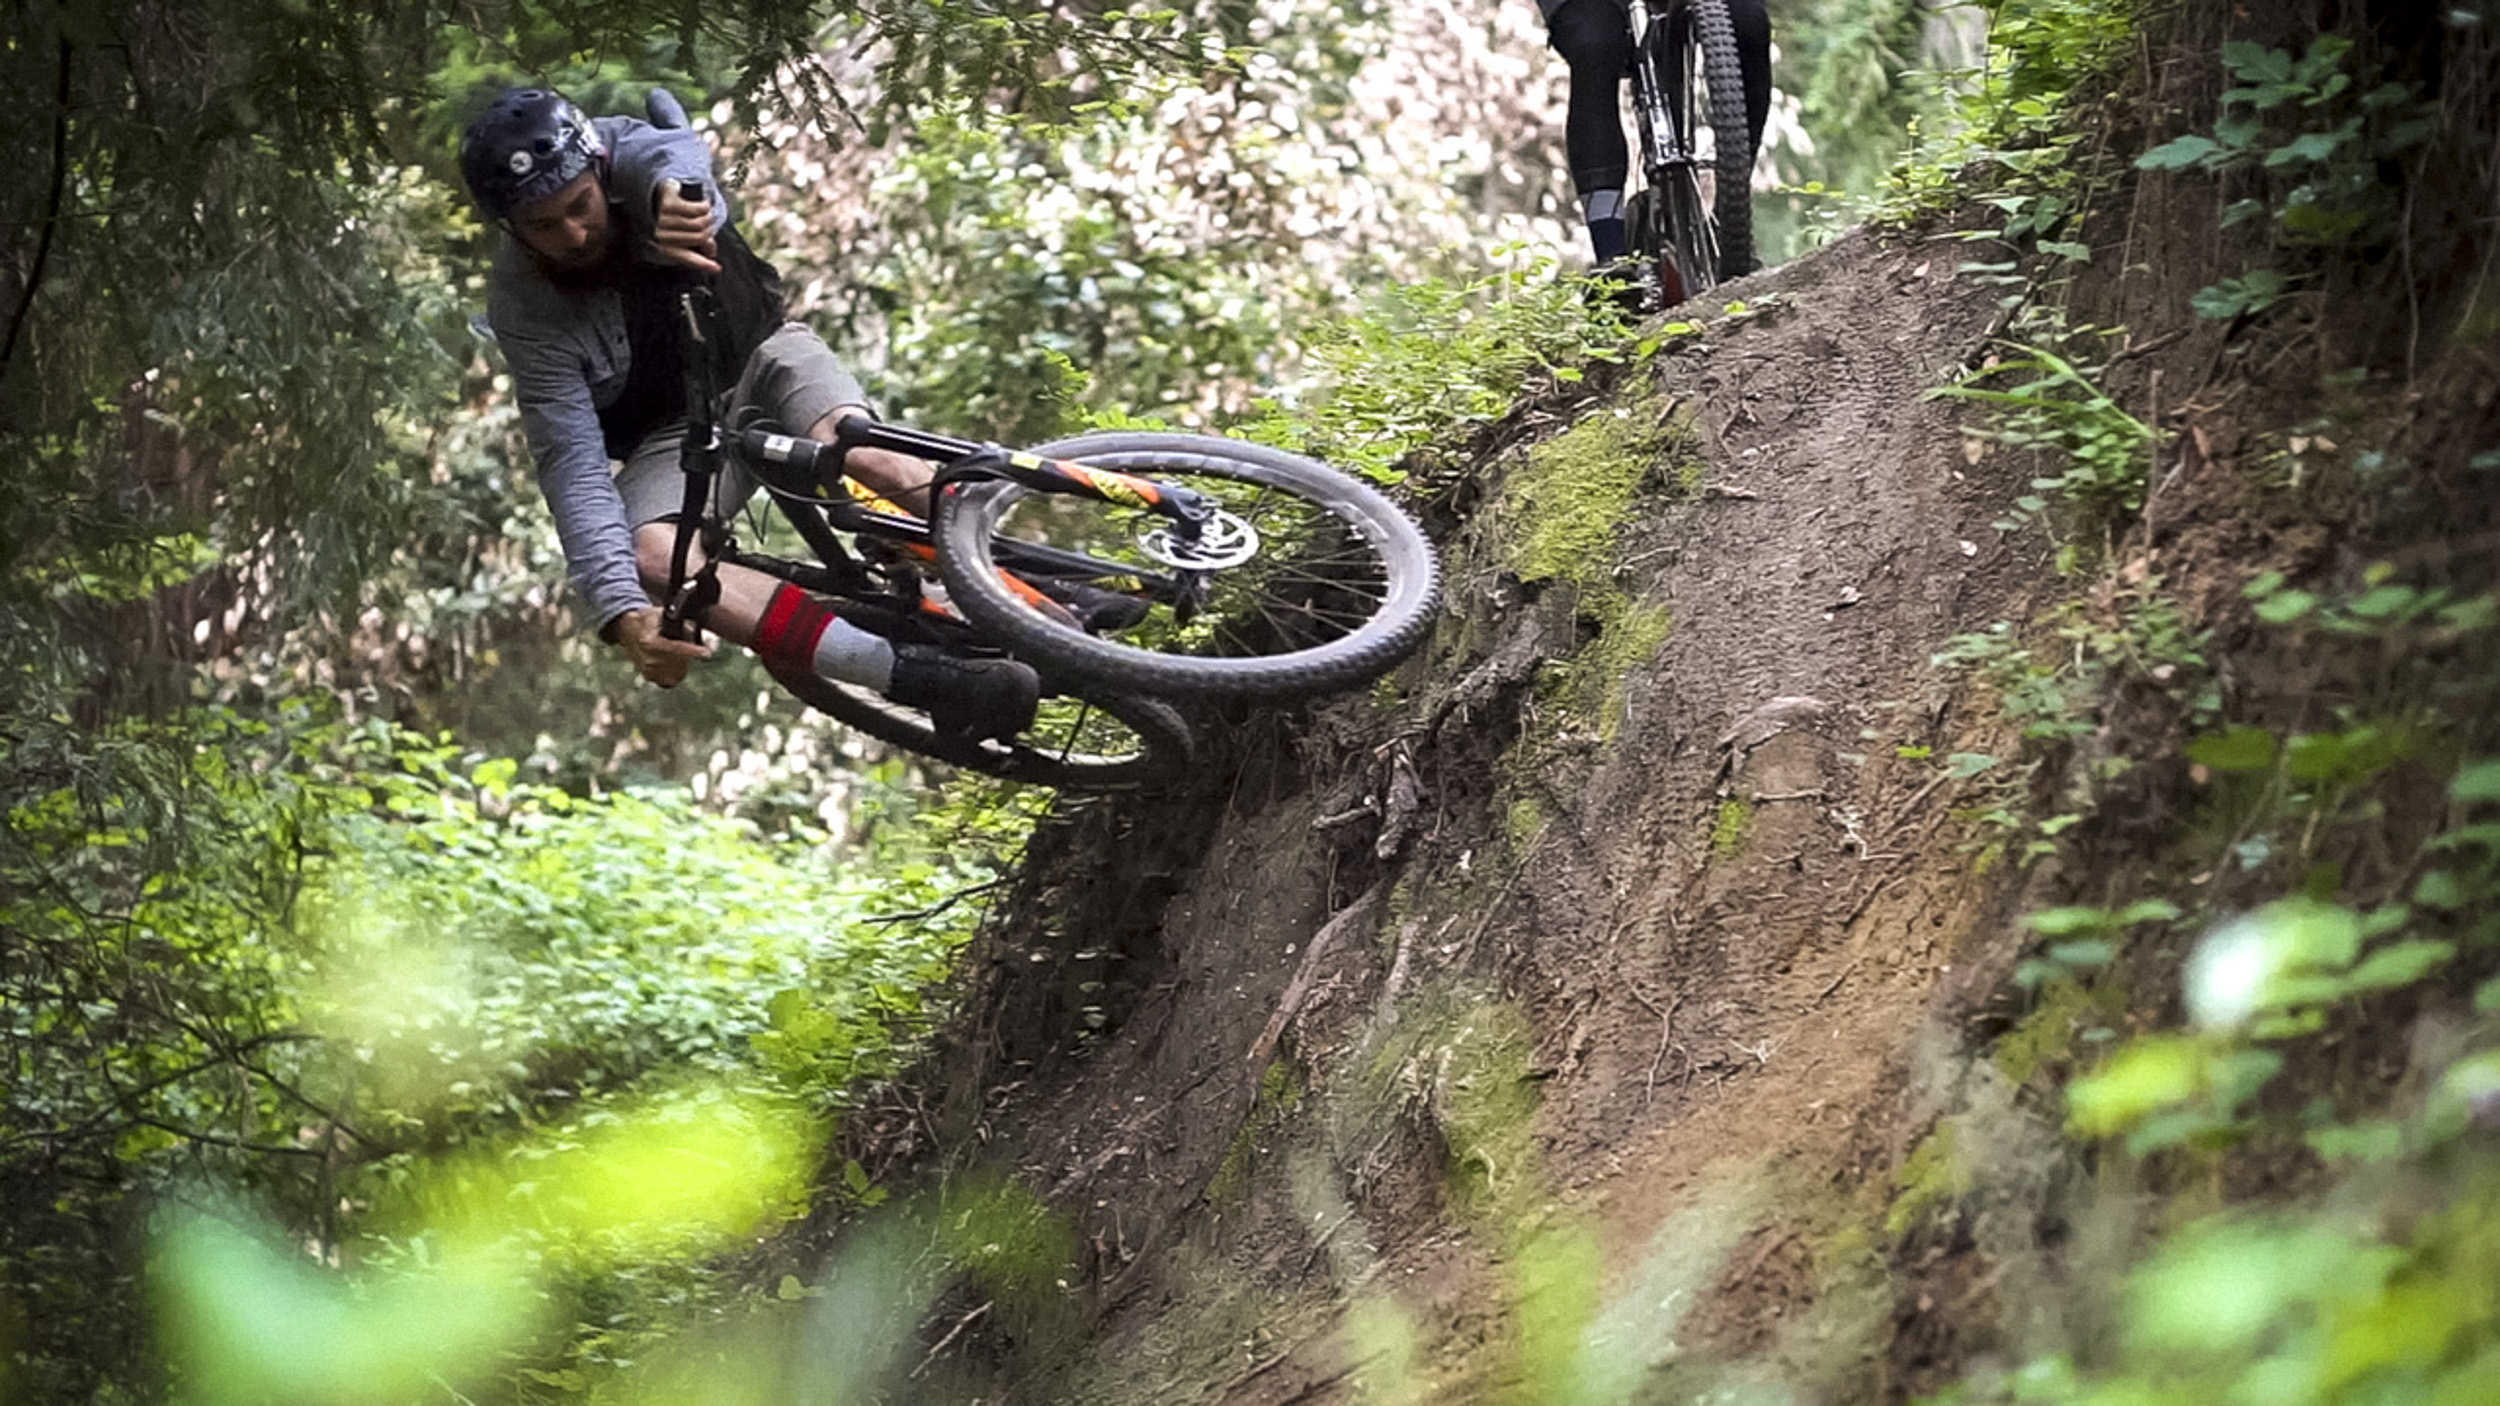 Airing berms on the squish bike